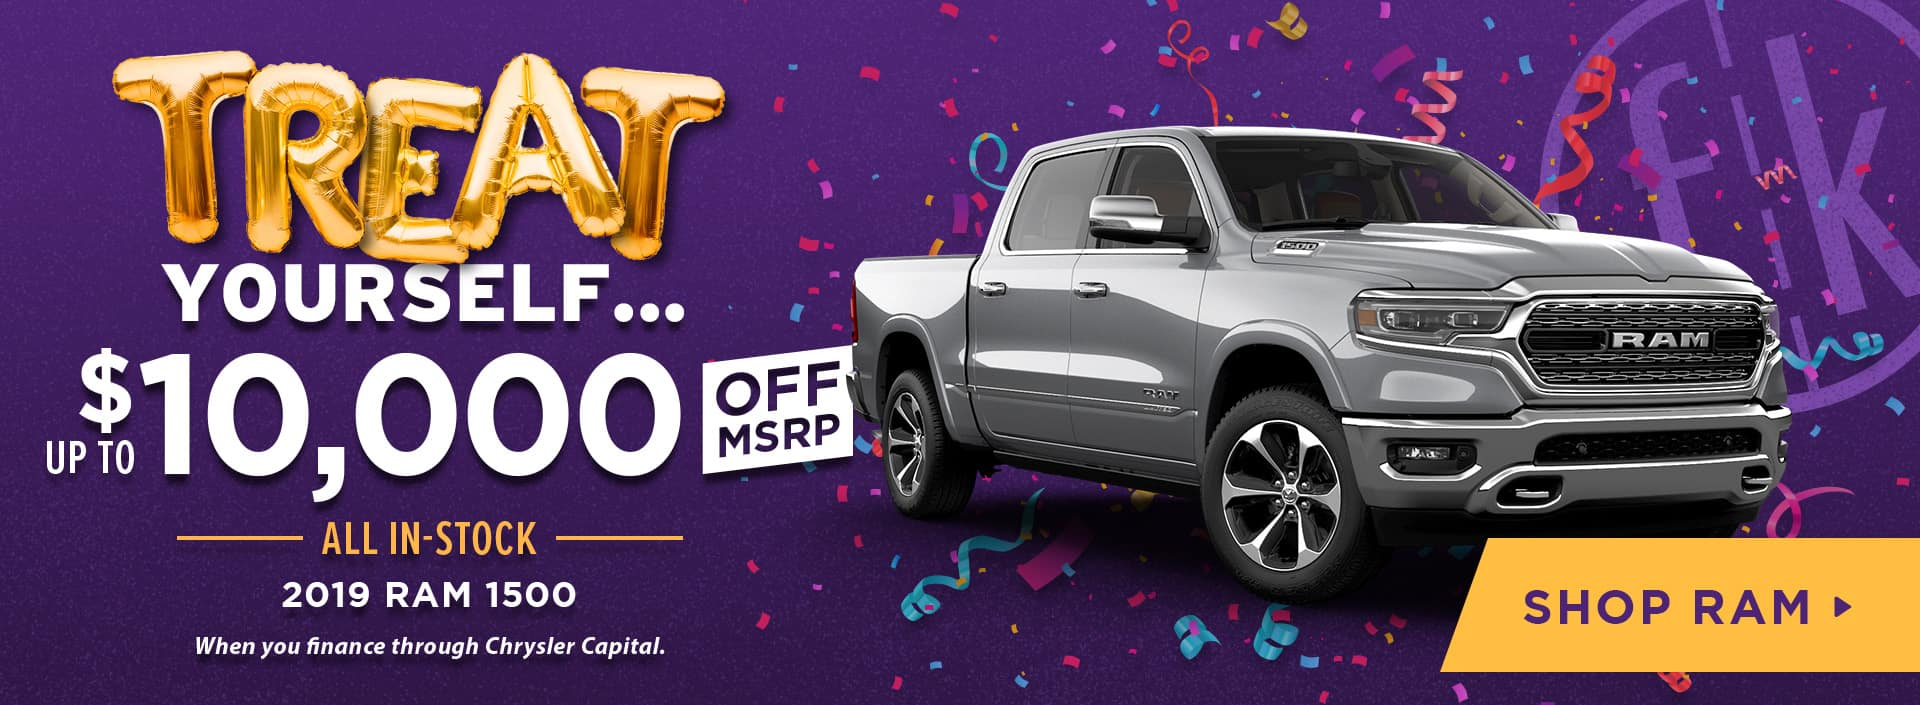 Up to $10,000 Off All In-Stock 2019 RAM 1500